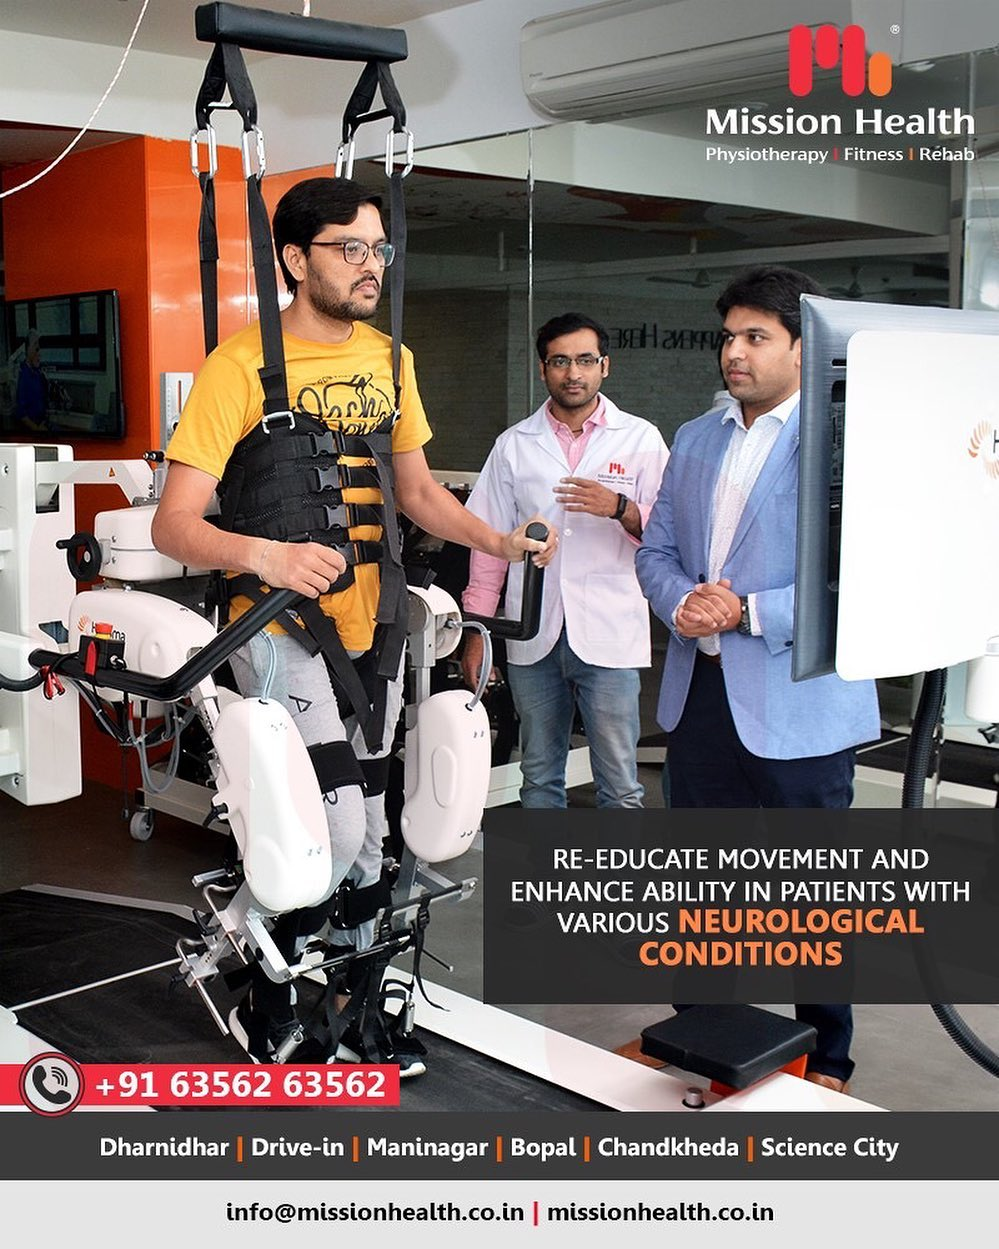 Neurological rehab can often improve function and ability; enhance the well-being of the patient.  The goal of neurological rehab is to help patient return to the highest level of function and independence possible, while improving Physical, Mental & Social quality of life.  At Mission Health, Neuro Rehabilitation is highly specialized & specific, with evidence based & advanced treatment protocols.  Call +916356263562 www.missionhealth.co.in  #RoboticsNeuroRehab #roboticsinneurophysiotherapy #neurophysiotherapy #MissionHealth #MissionHealthIndia #AbilityClinic #MovementIsLife